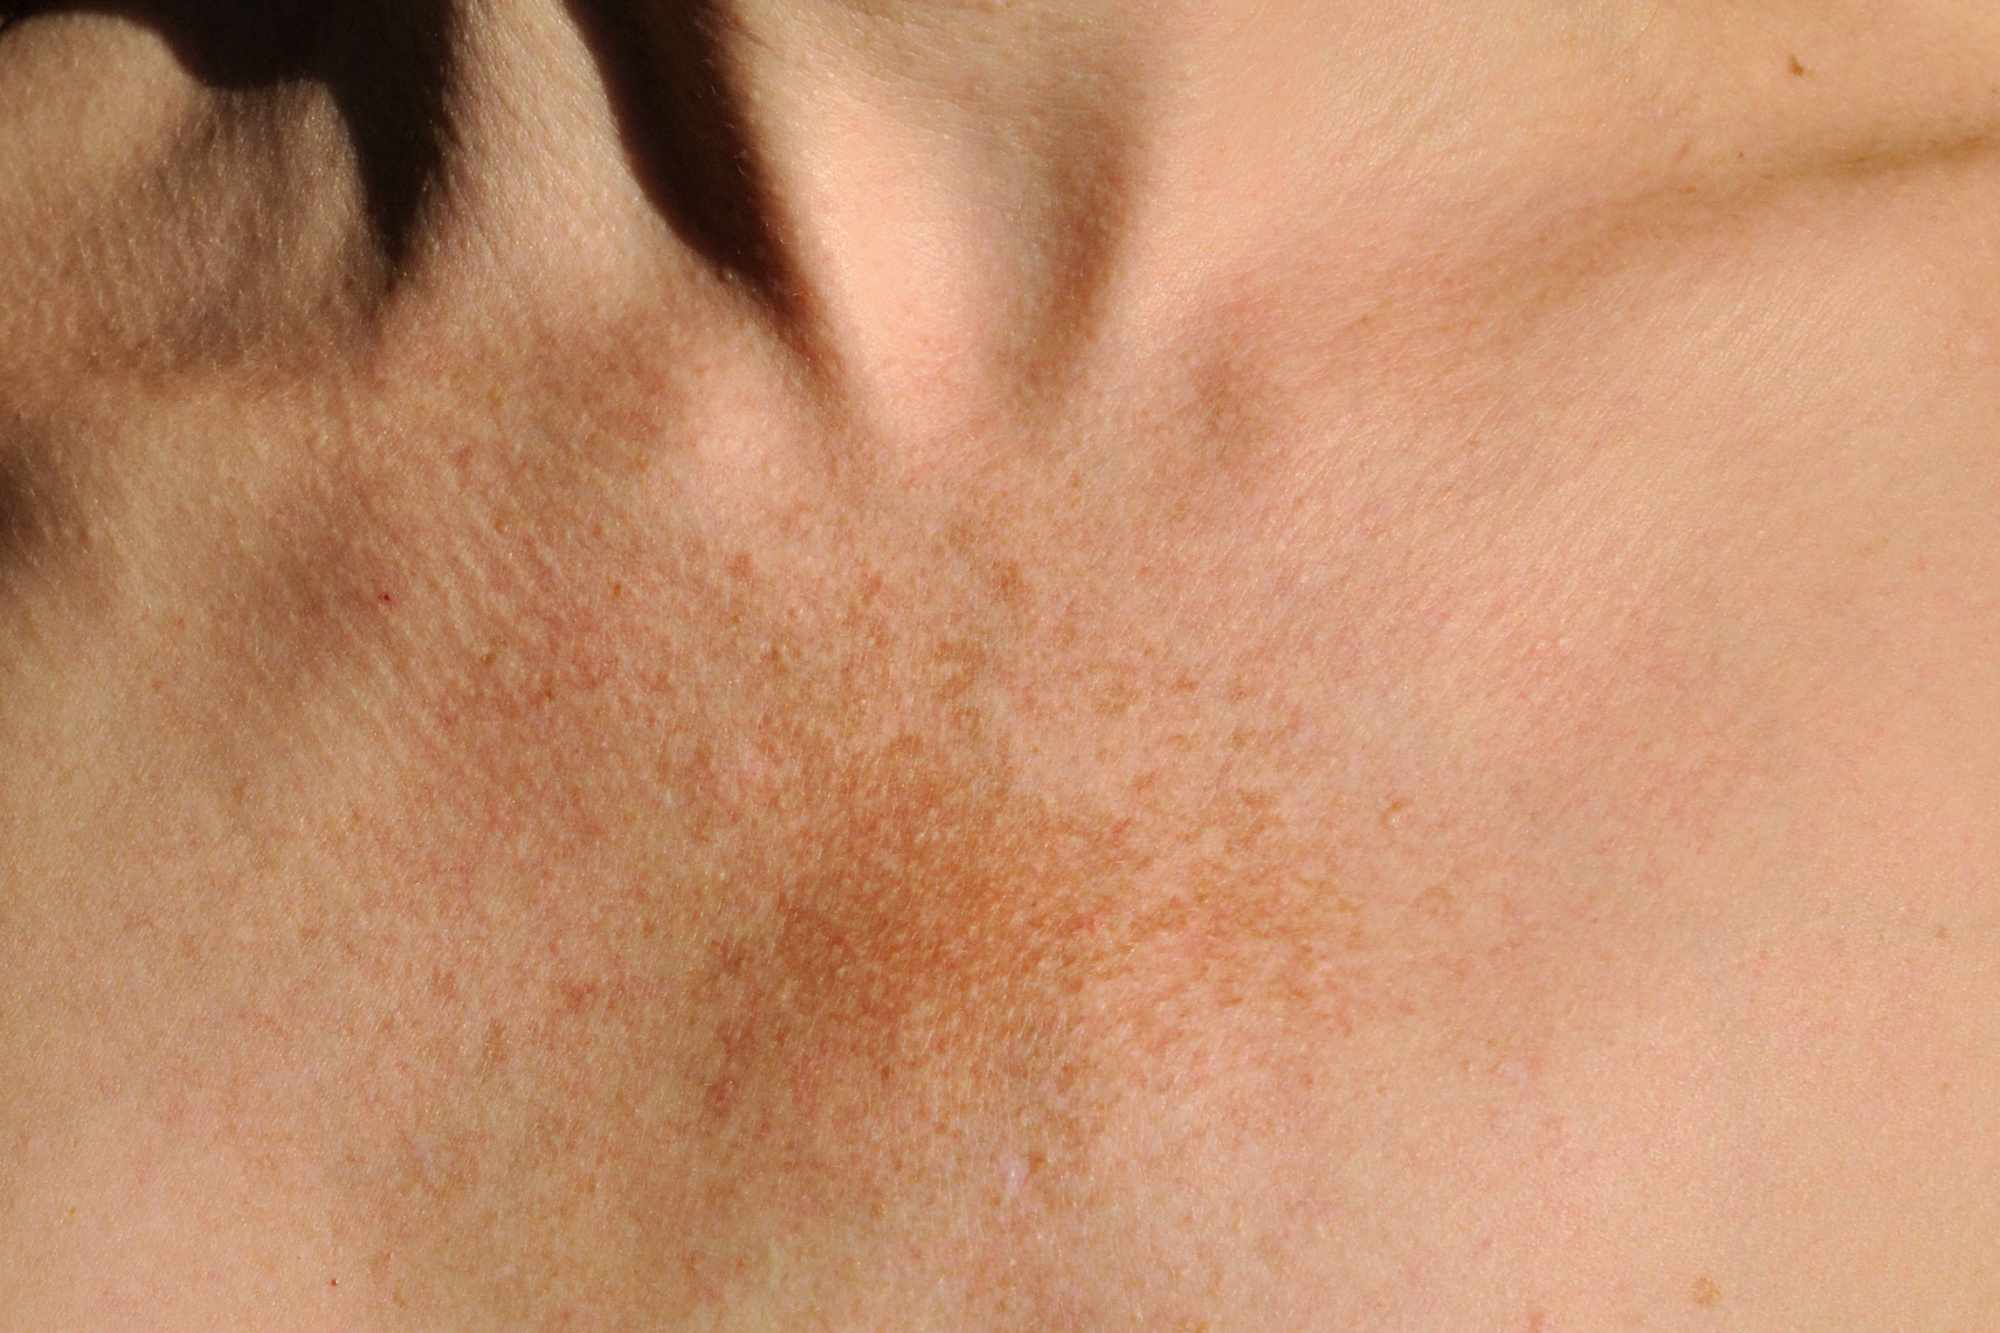 chest with melasma sunspots